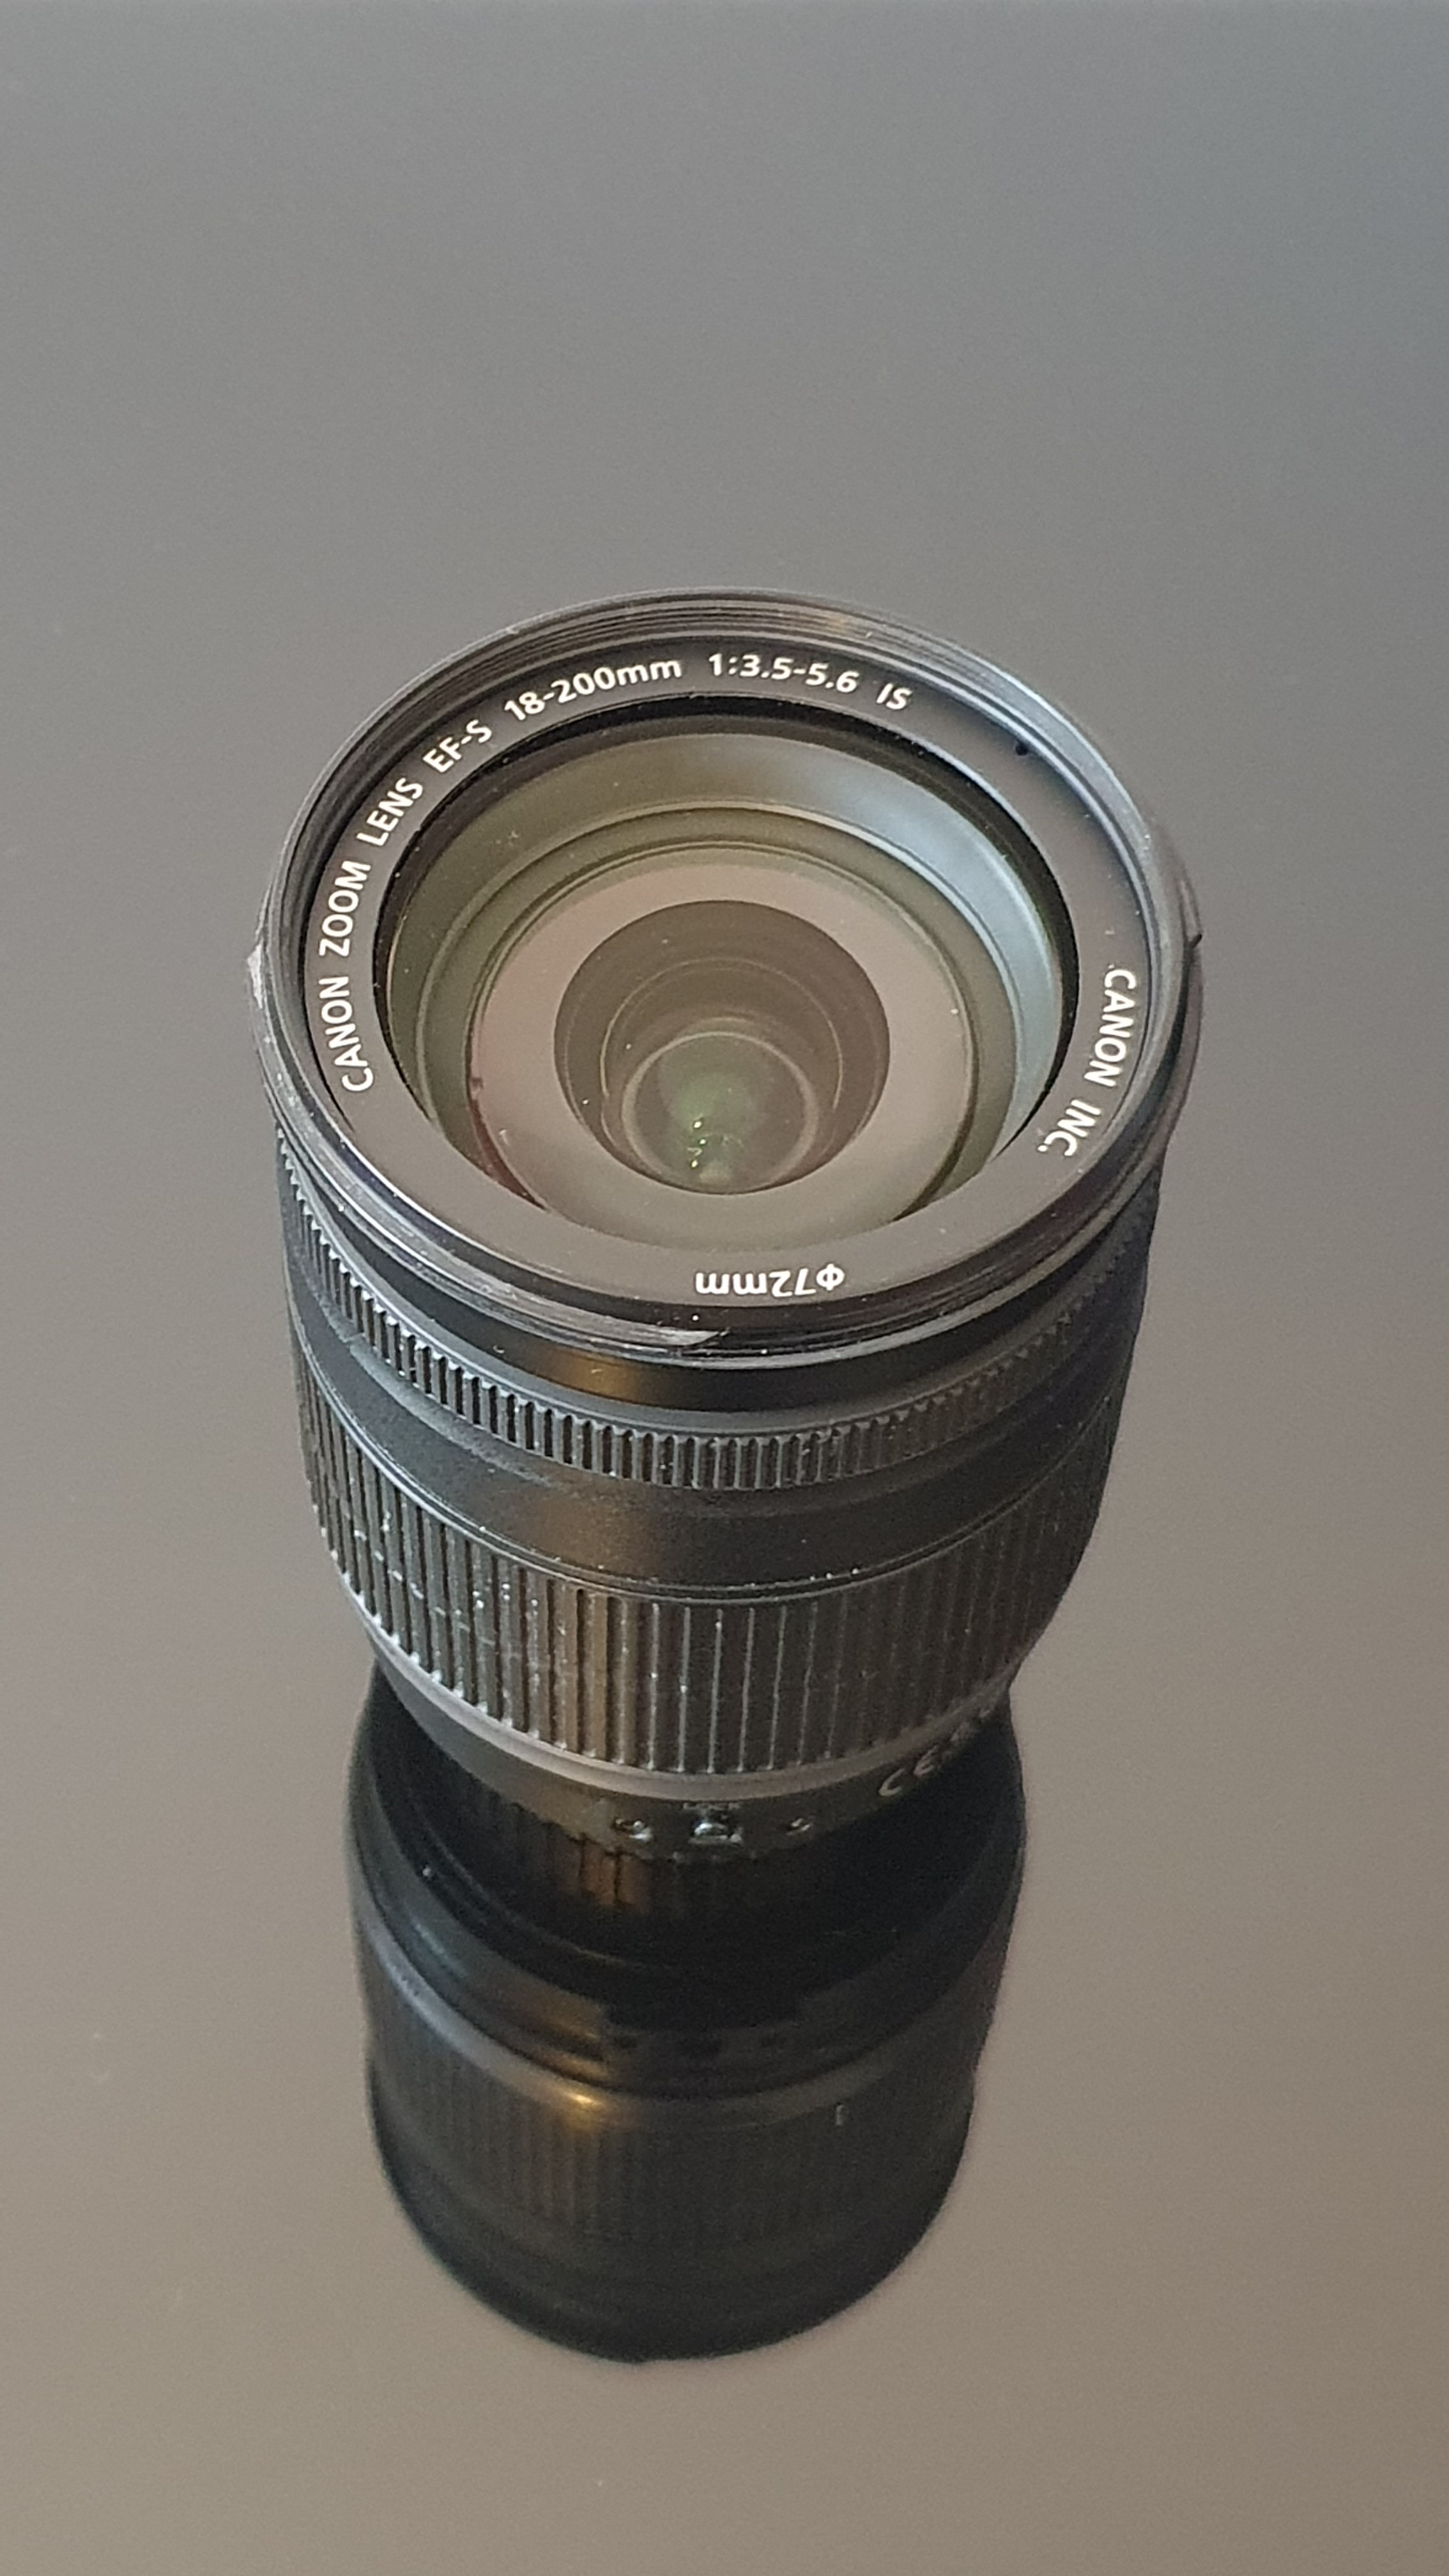 Objectif Canon EF-S 18-200 mm f/3.5 - 5.6 IS